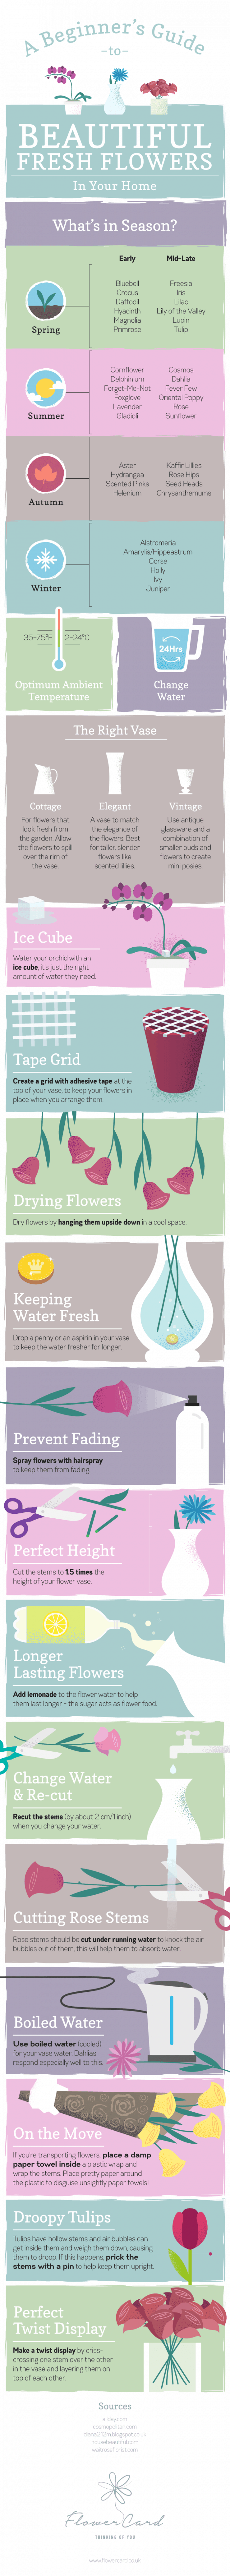 Tips on how to keep flowers in your home